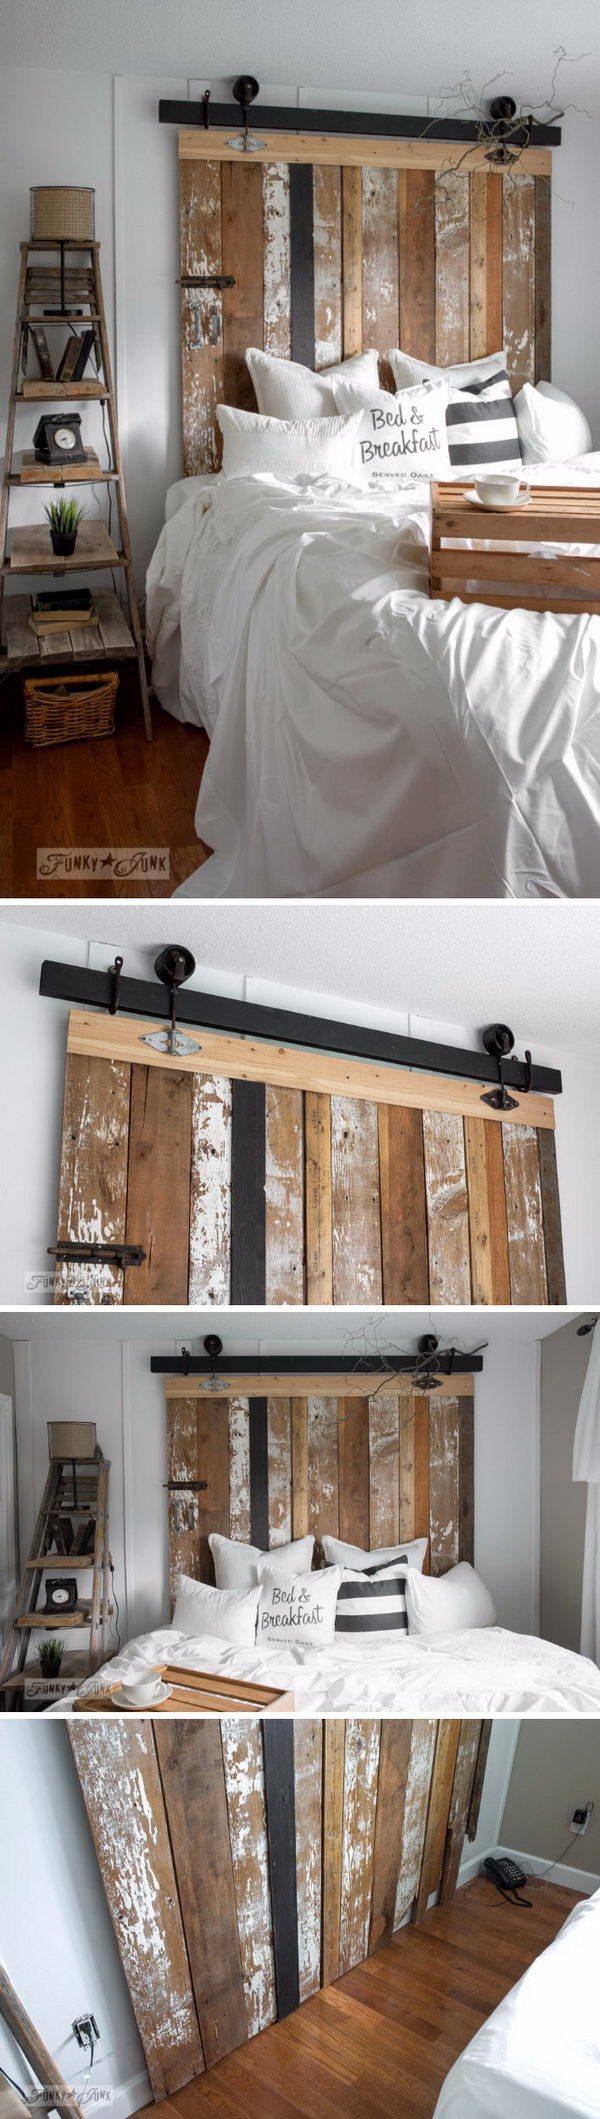 DIY Reclaimed Wood Barn Door Headboard With Faux Hardware.